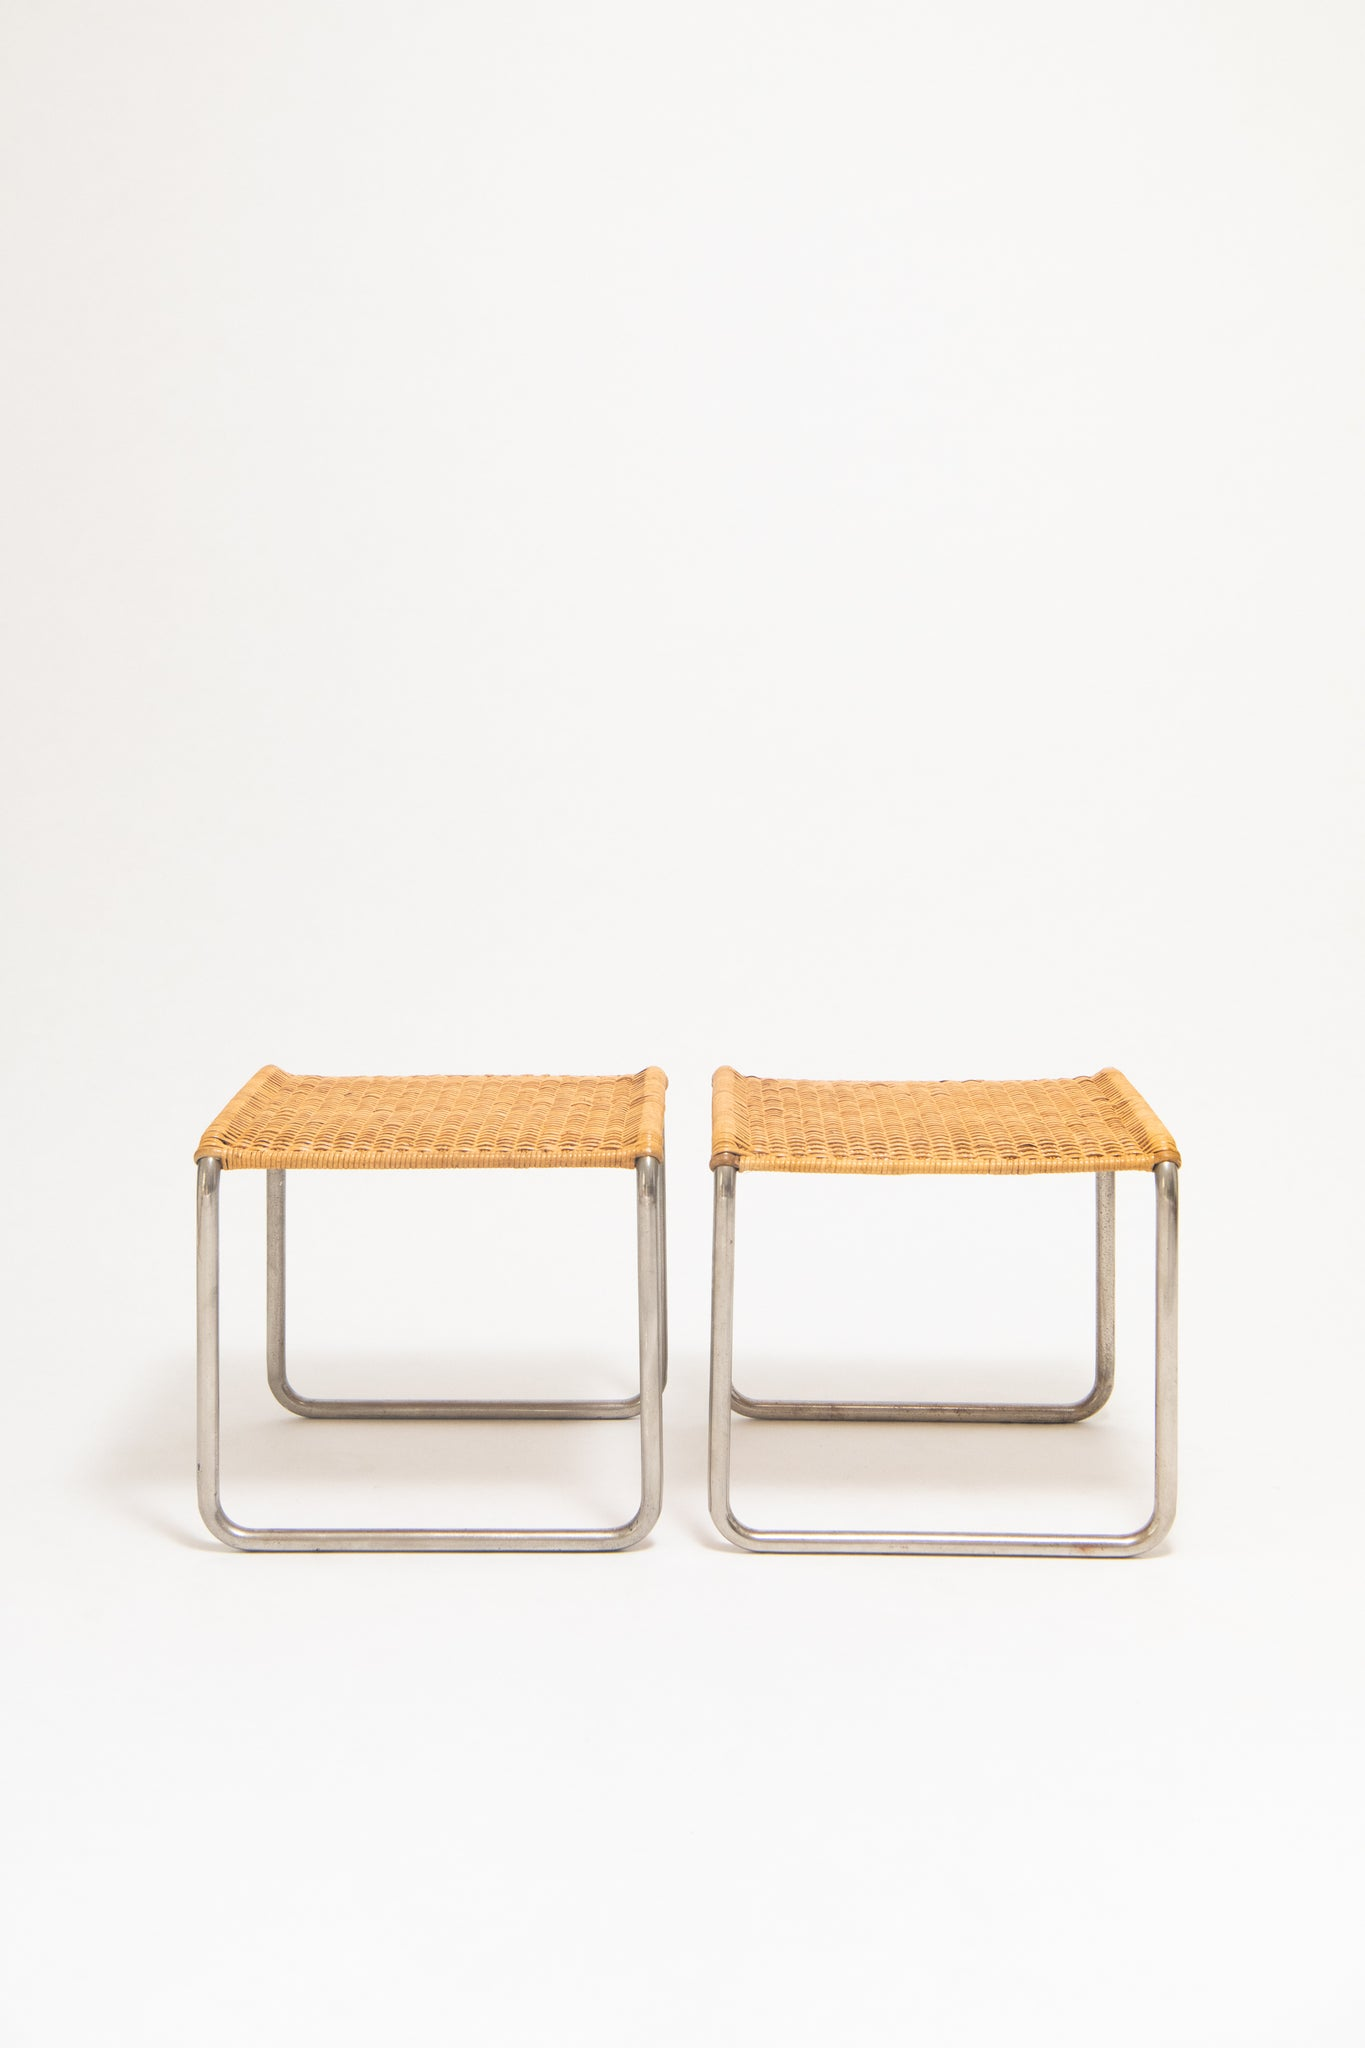 LUDWIG MIES VAN DER ROHE & LILLY REICH, PAIR OF MR1 STOOLS, C. 1927